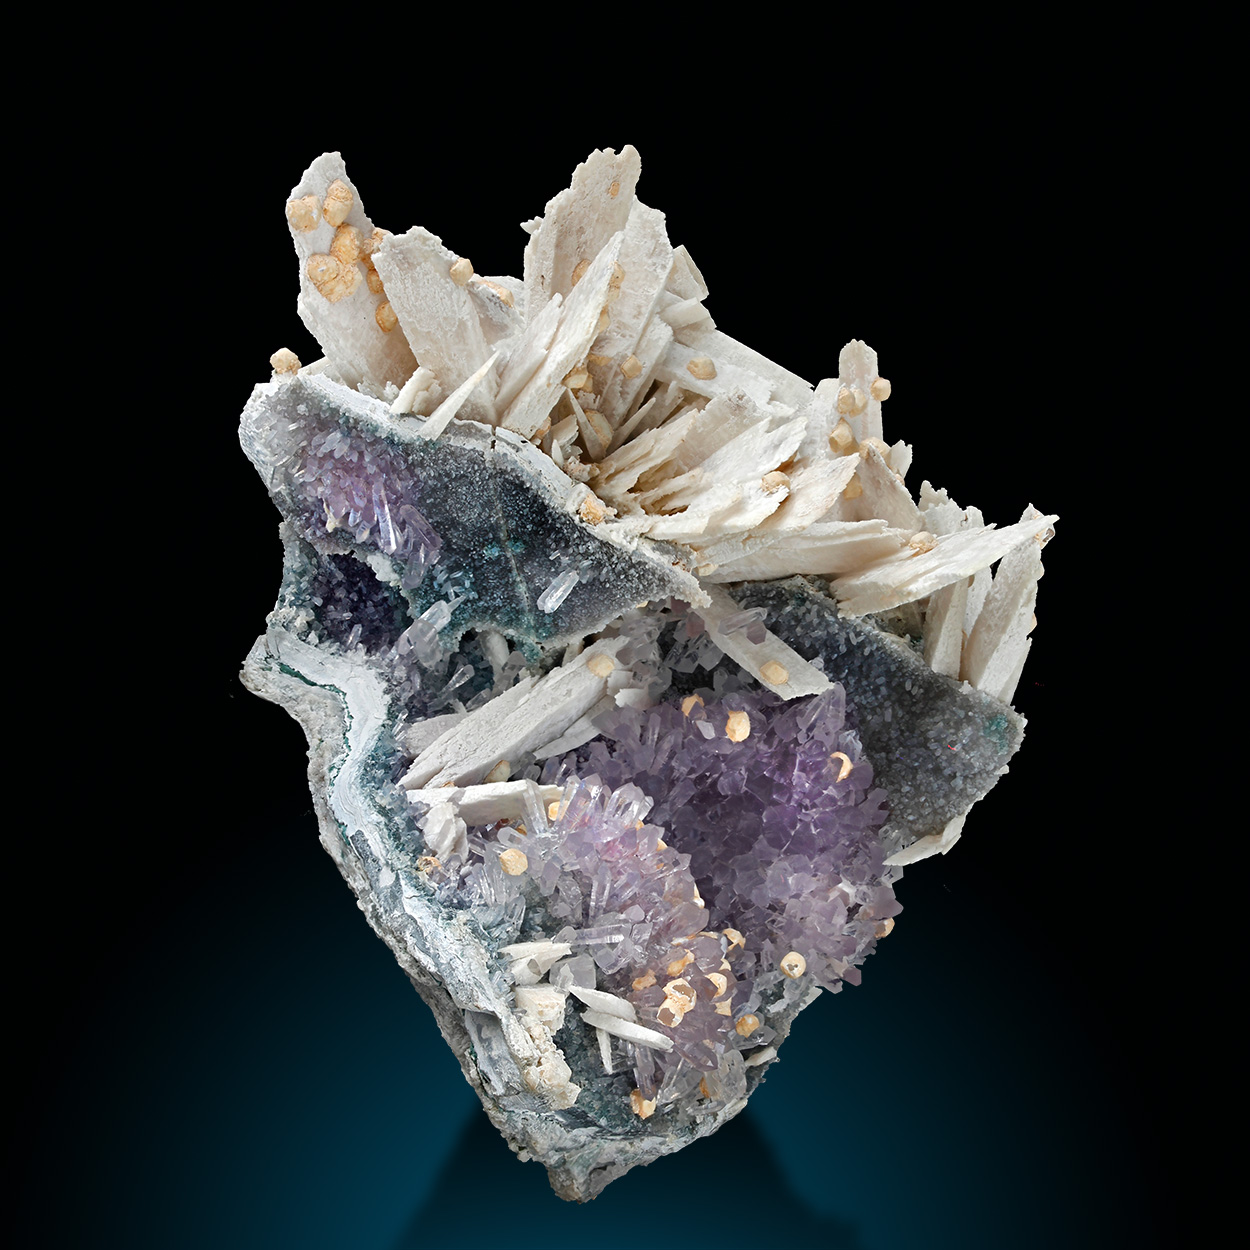 Anhydrite Calcite & Amethyst